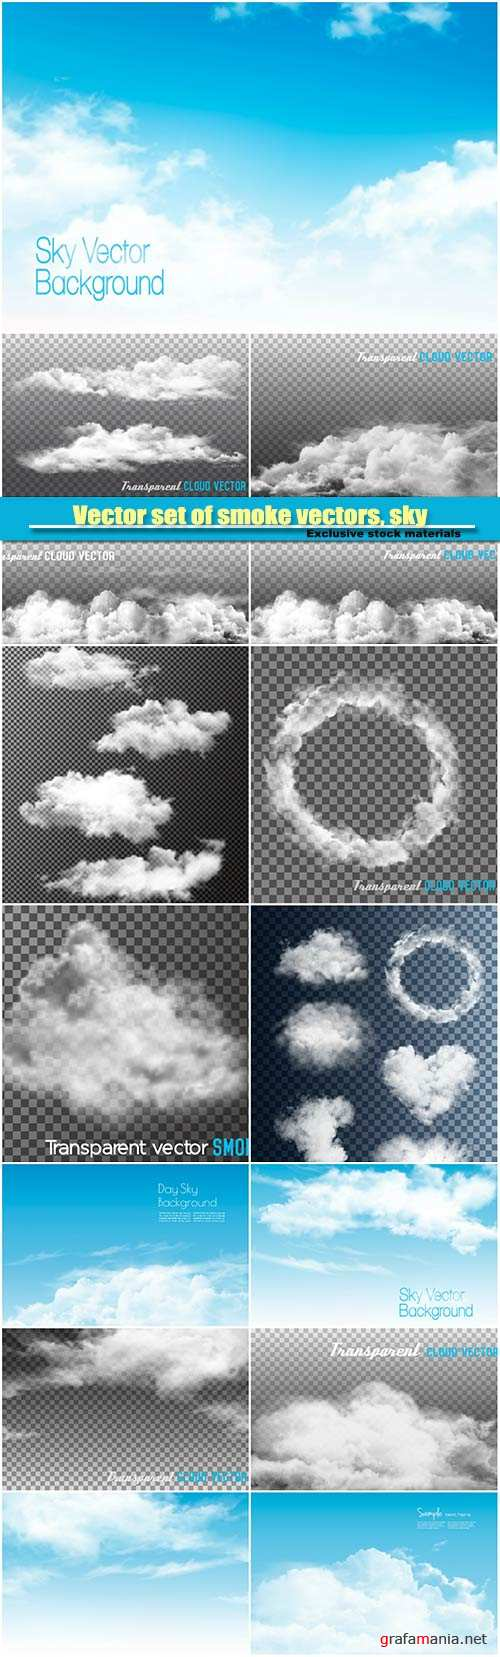 Vector set of smoke vectors, sky with clouds